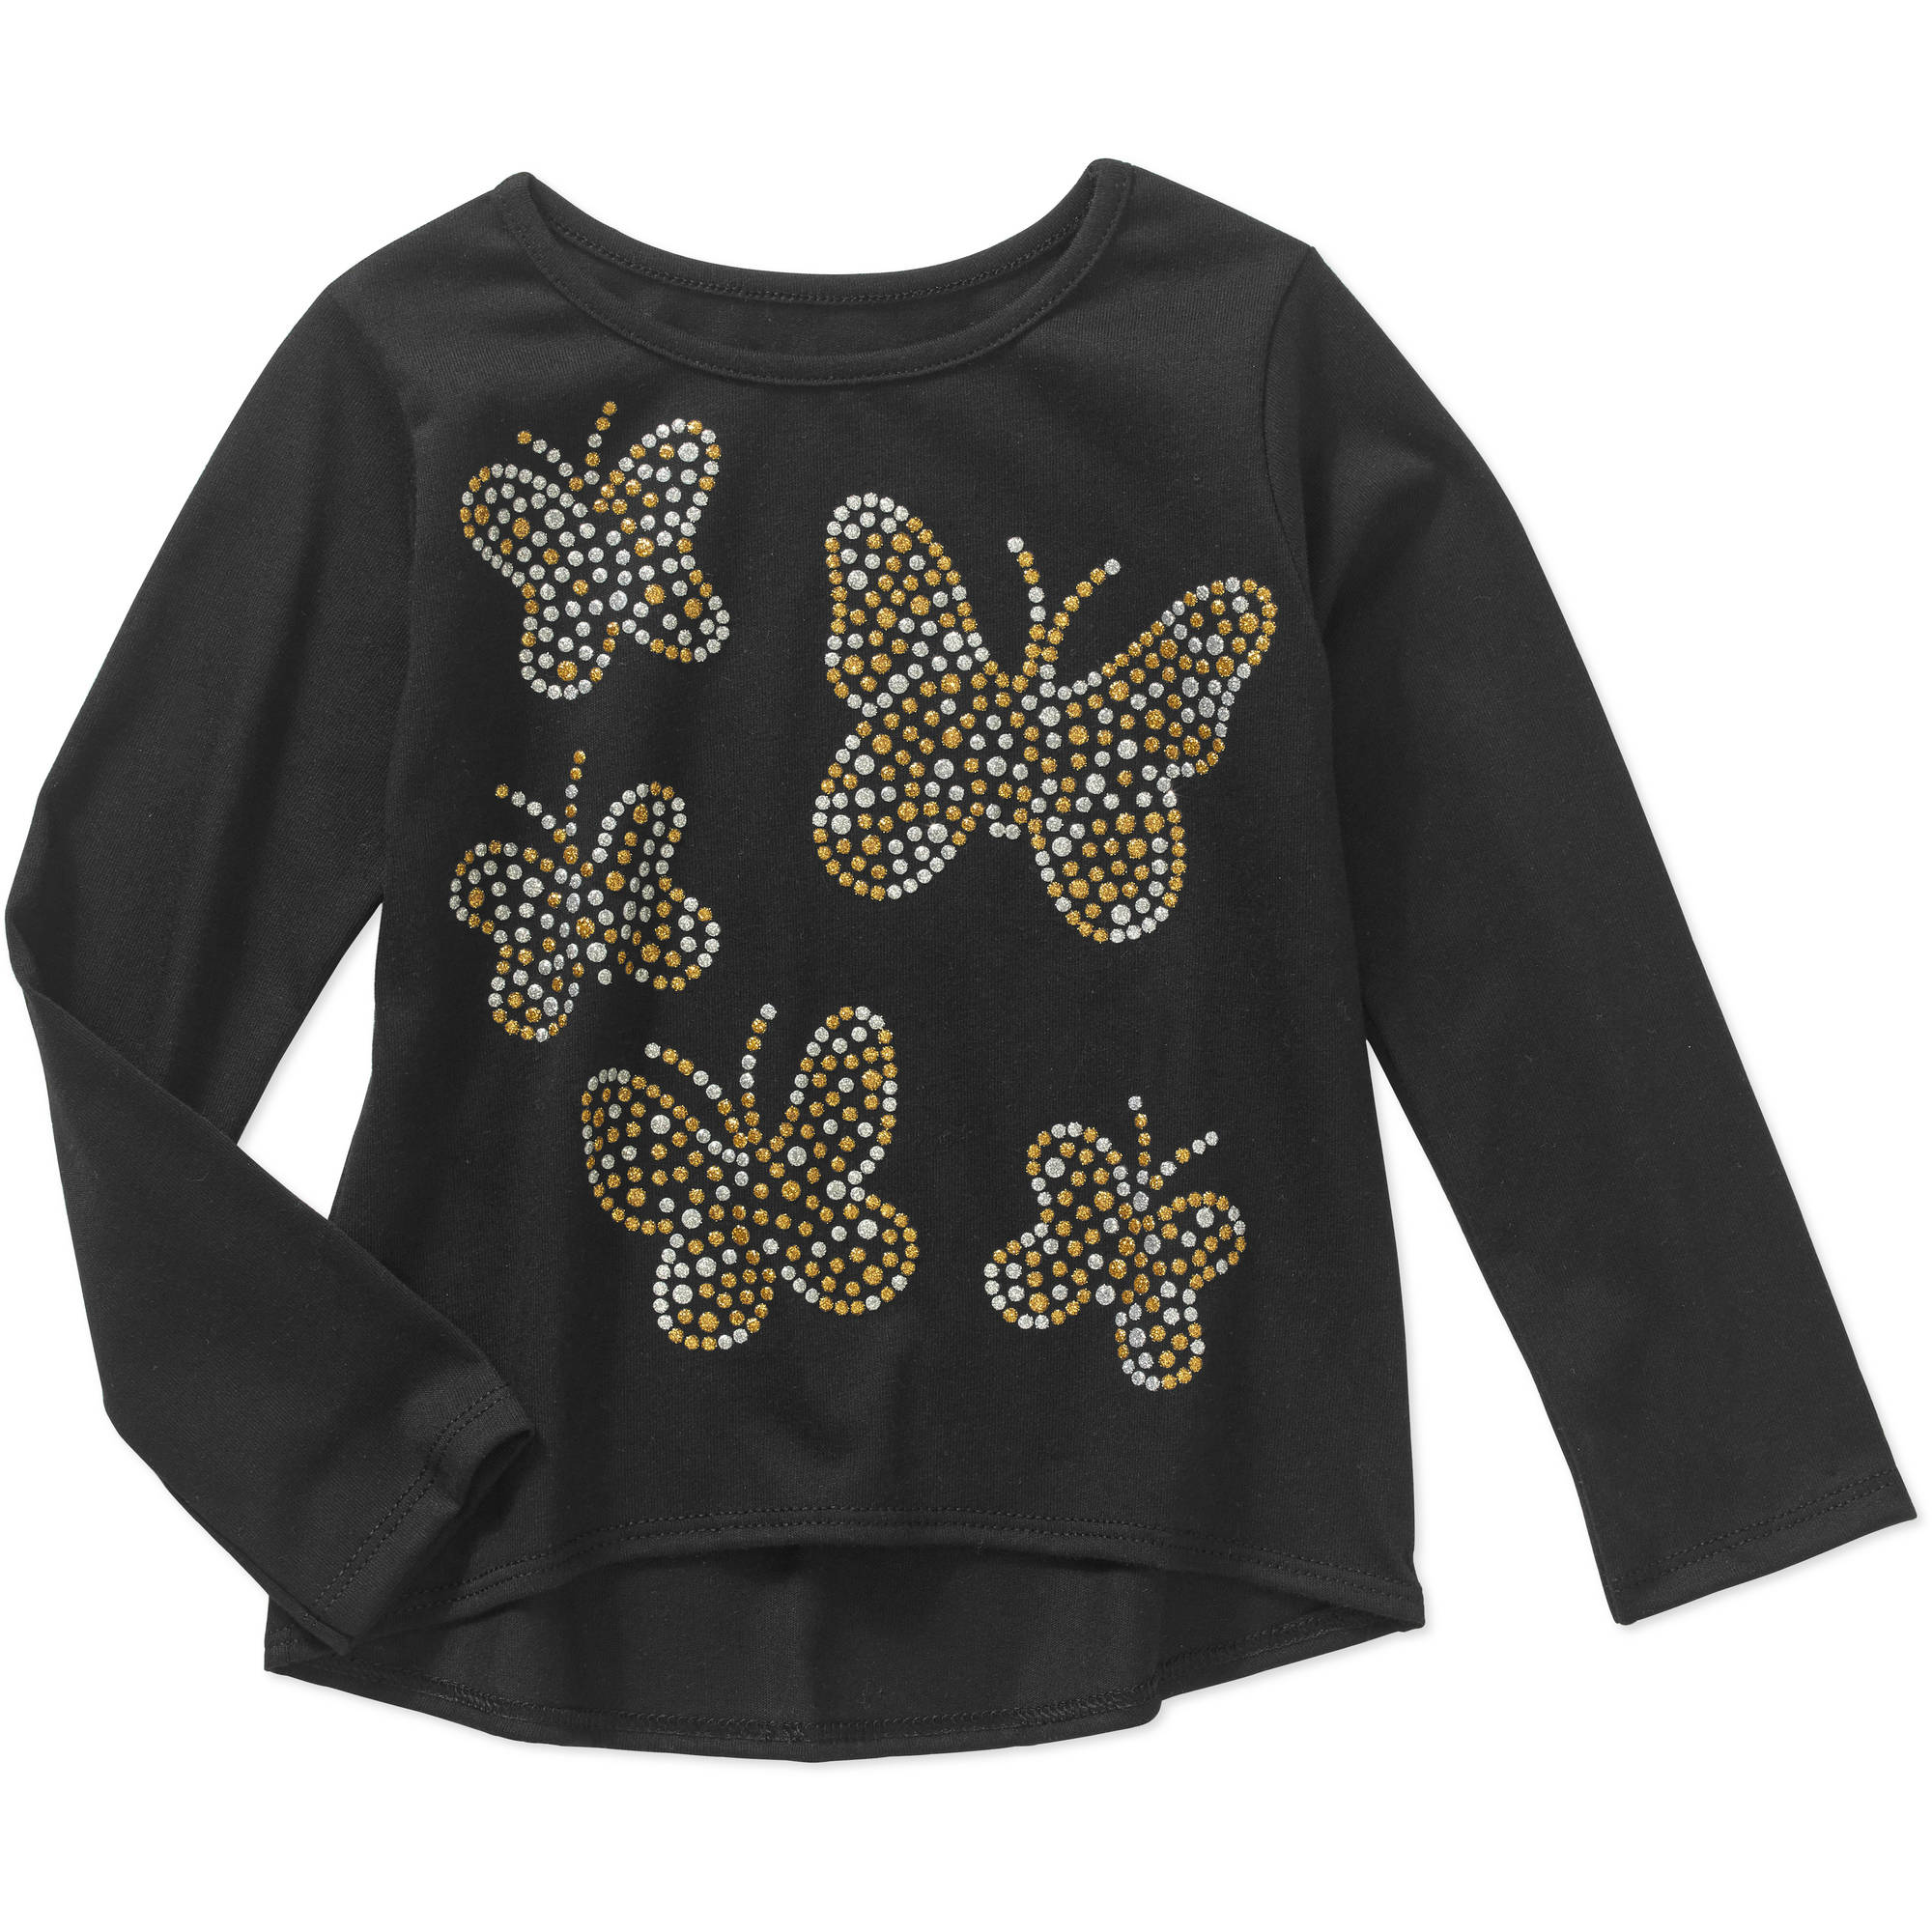 Garanimals Baby Toddler Girls' Long Sleeve Graphic Hi-Lo Tee